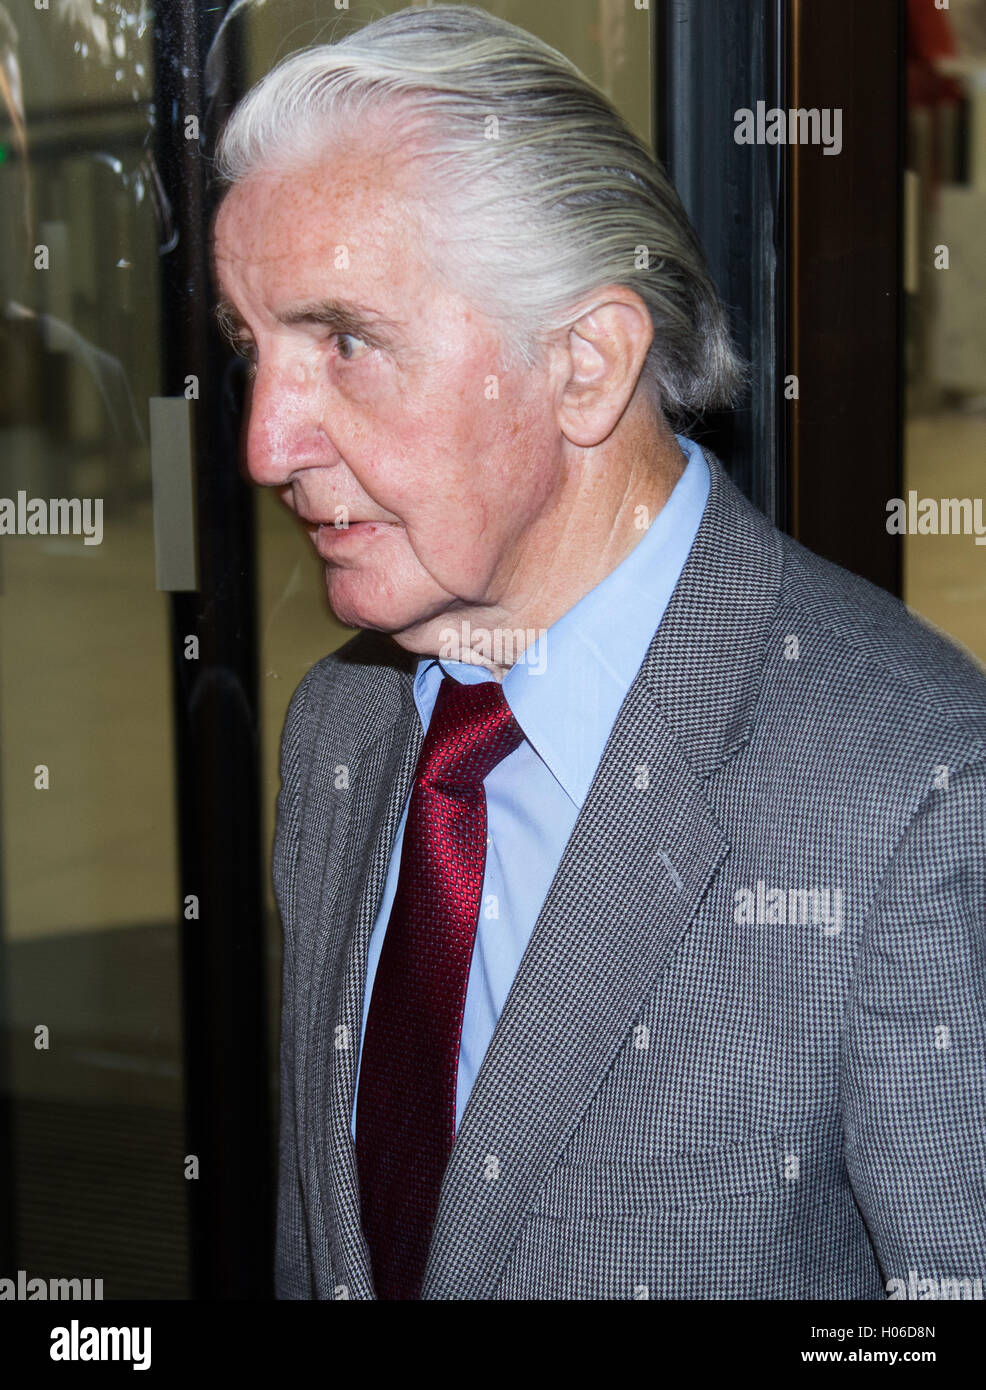 Westminster, London. 20th Sep, 2016. Dennis Skinner leaves the Labour Party Headquarters following a meeting of - Stock Image